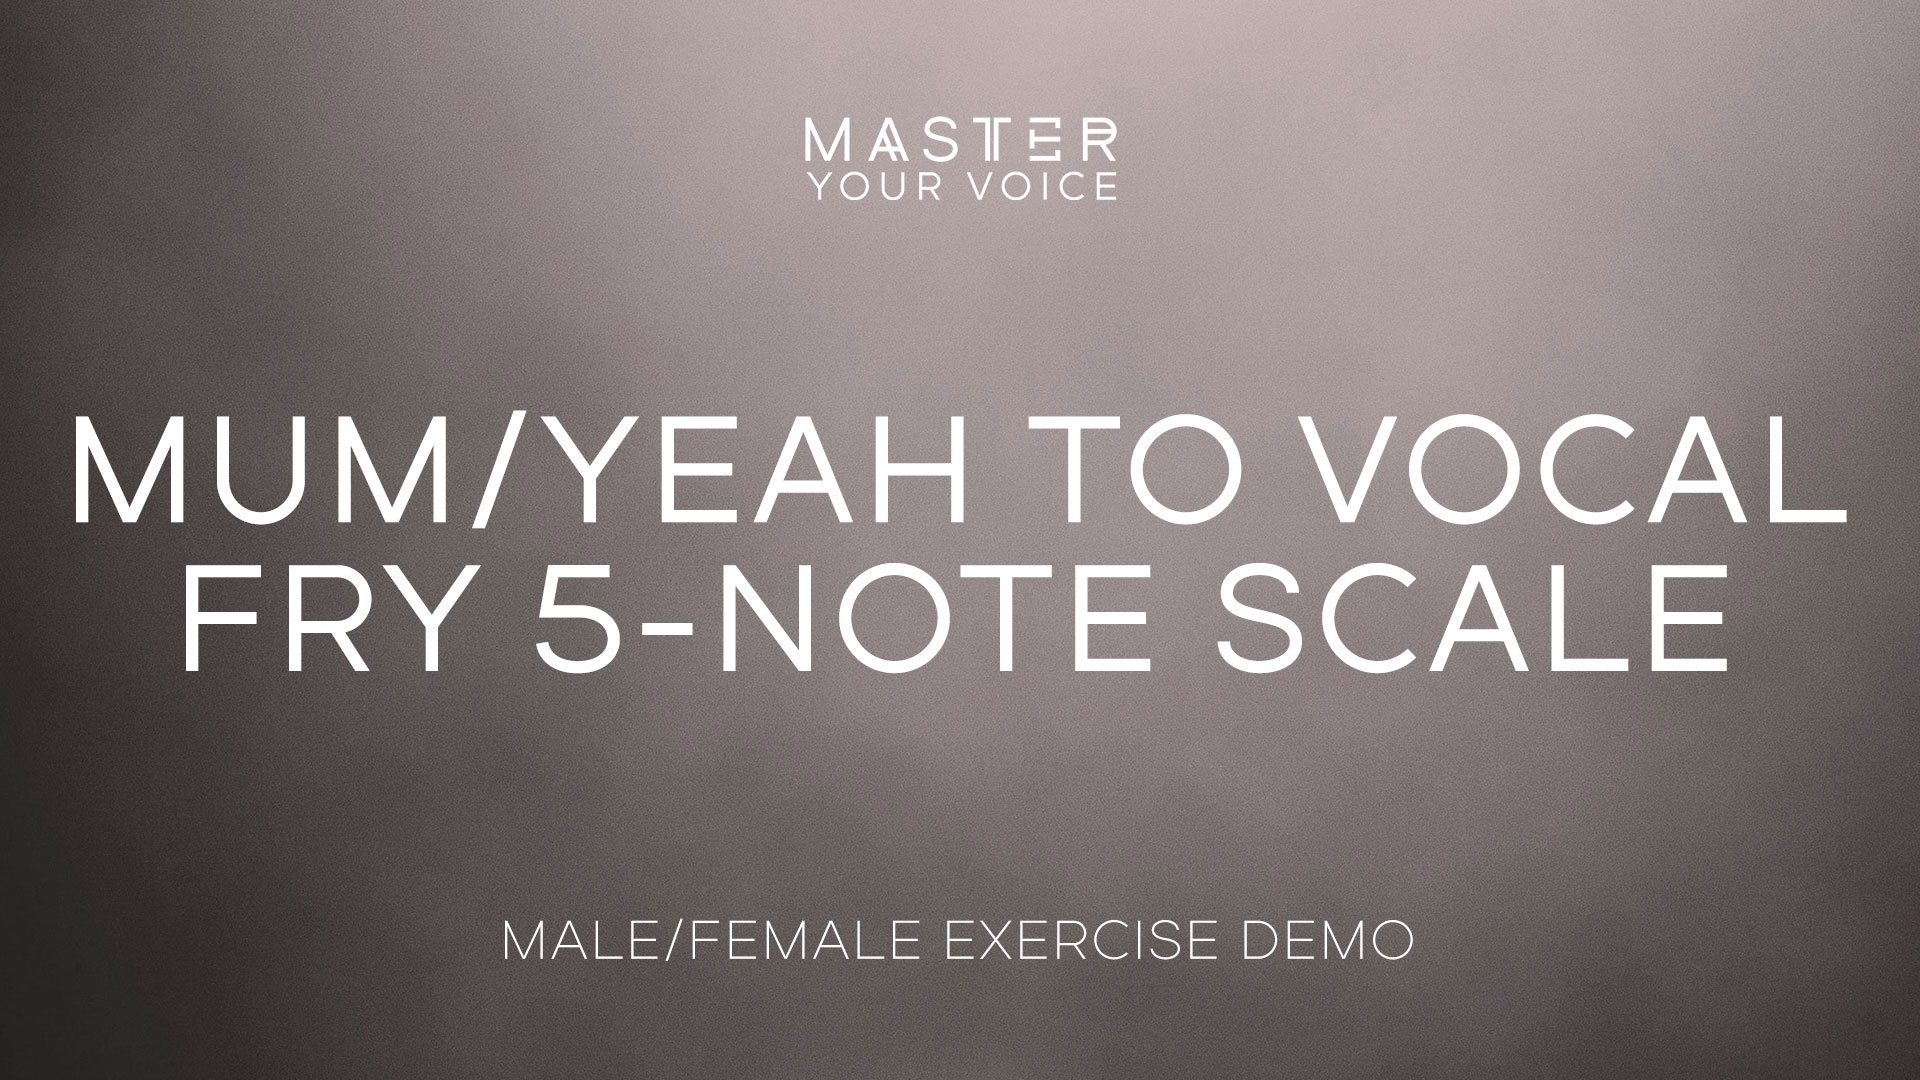 Mum/Yeah to Vocal Fry 5-Note Scale Exercise Demo